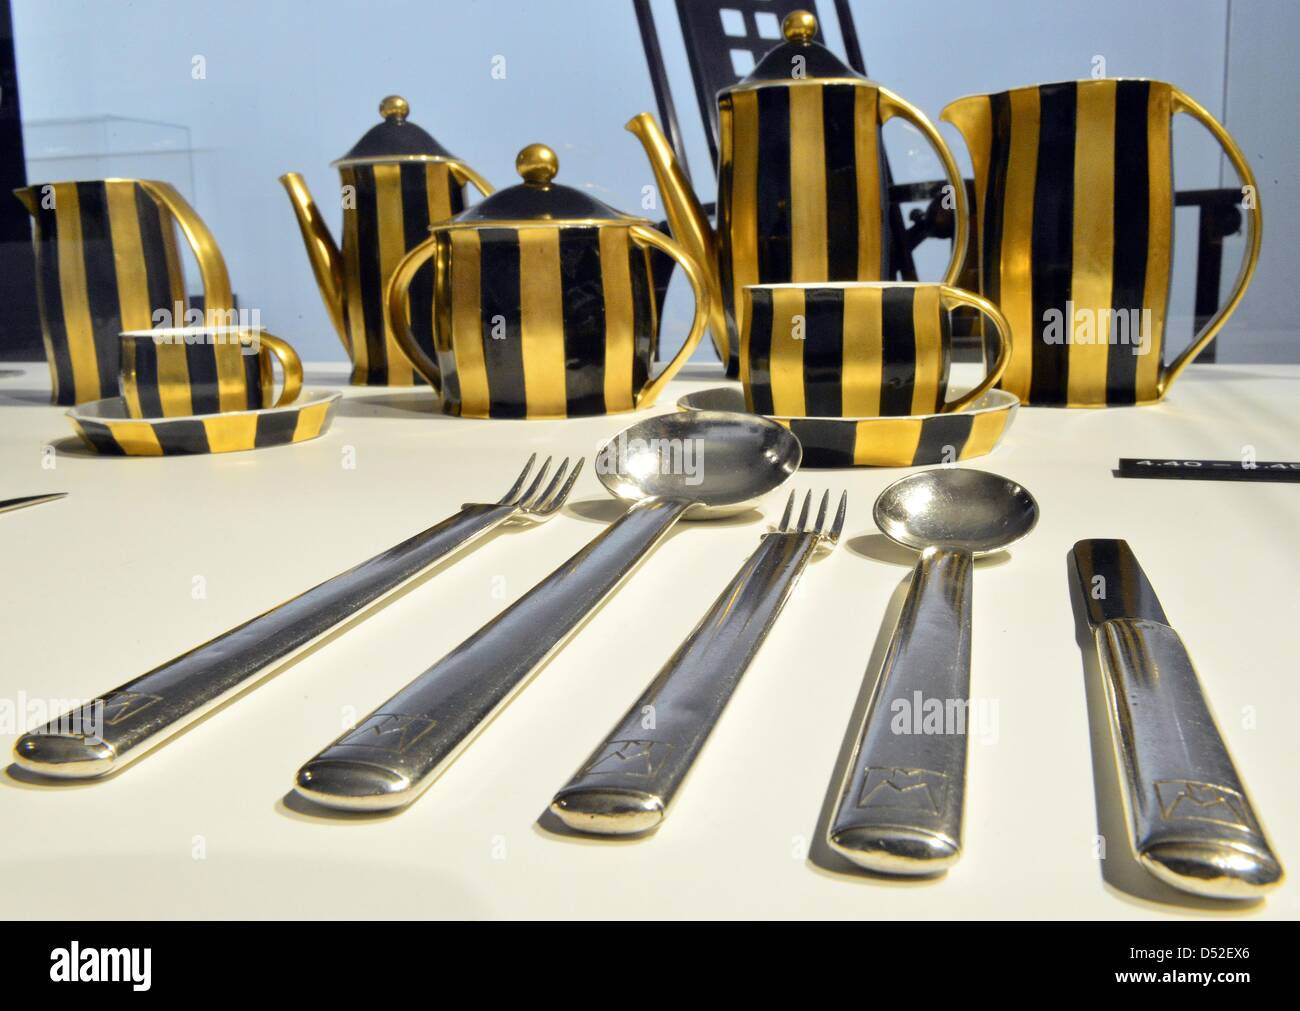 Cutlery from around 1906 and the coffe and mocha set 'Merkur' from 1910 are on display at the exhibition - Stock Image